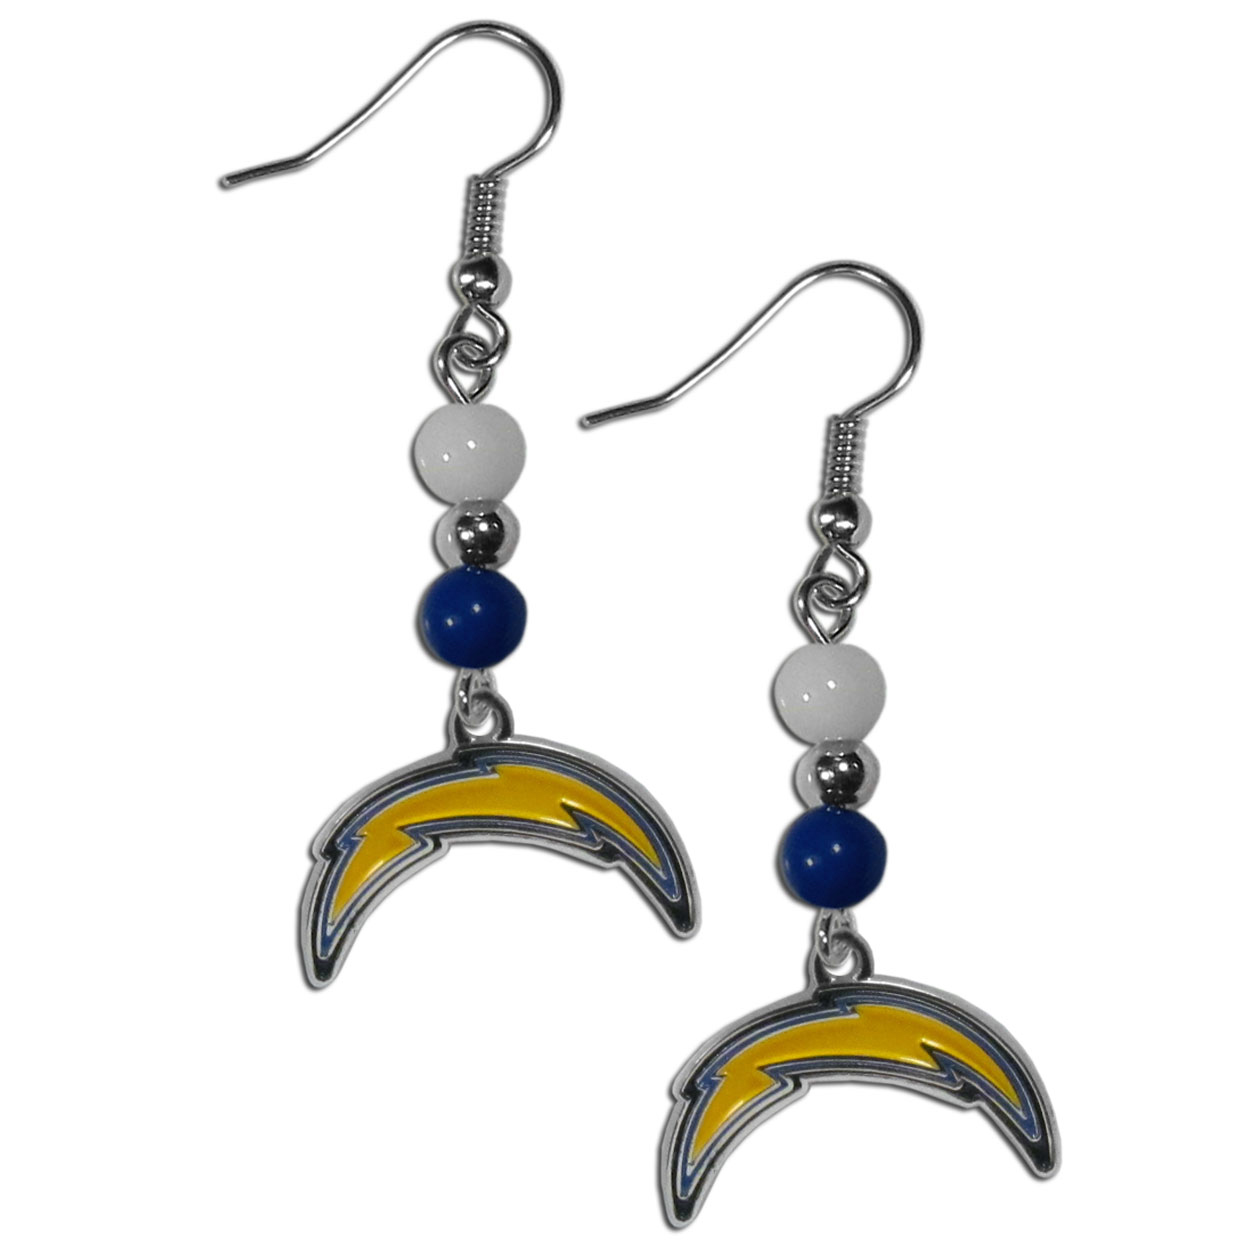 Los Angeles Chargers Fan Bead Dangle Earrings - Love your team, show it off with our Los Angeles Chargers bead dangle earrings! These super cute earrings hang approximately 2 inches and features 2 team colored beads and a high polish team charm. A must have for game day!